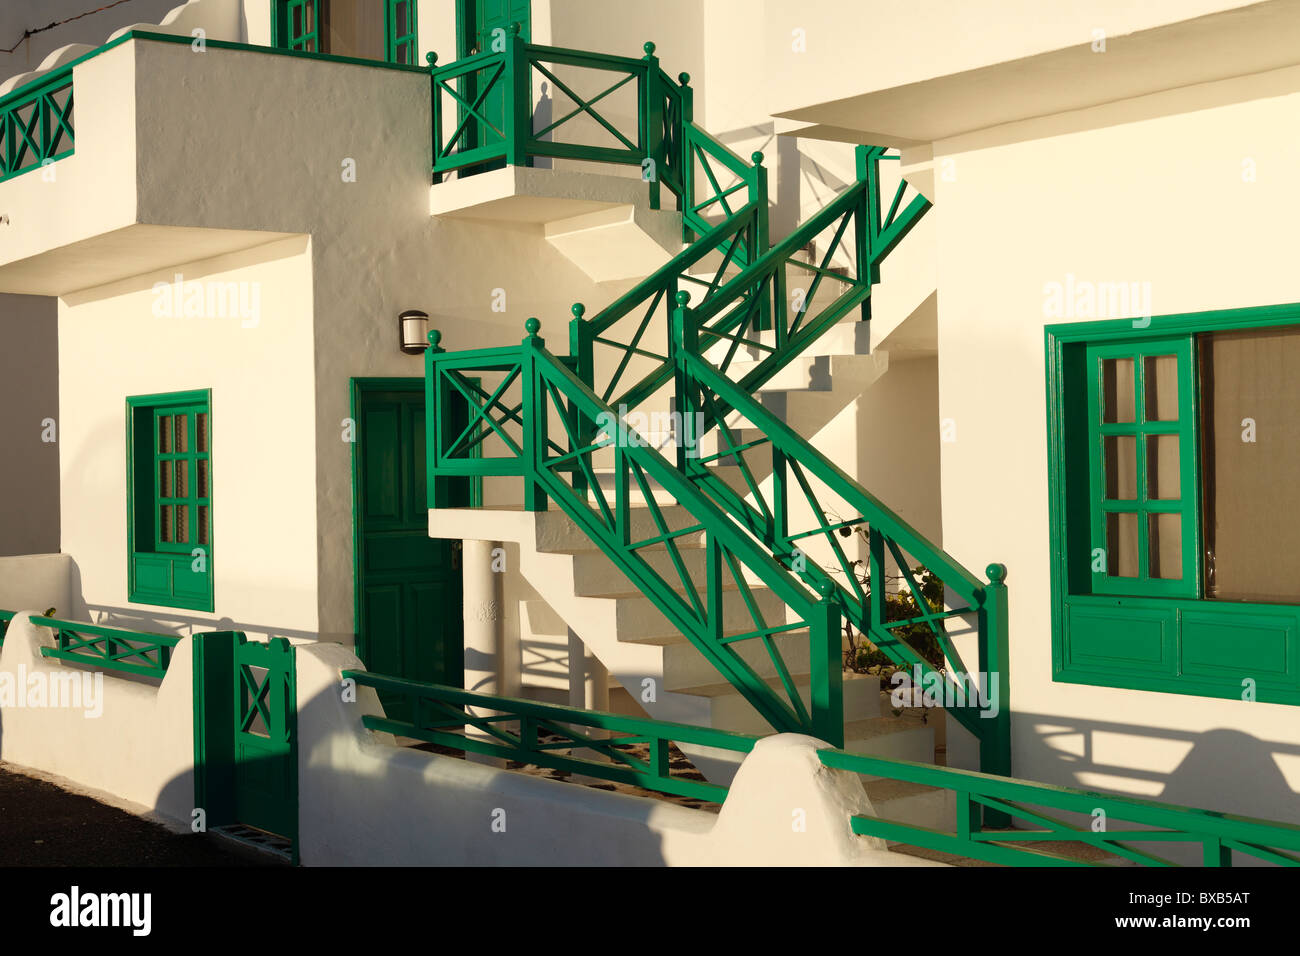 External staircase, typical residential building, Órzola, Lanzarote, Canary Islands, Spain, Europe - Stock Image